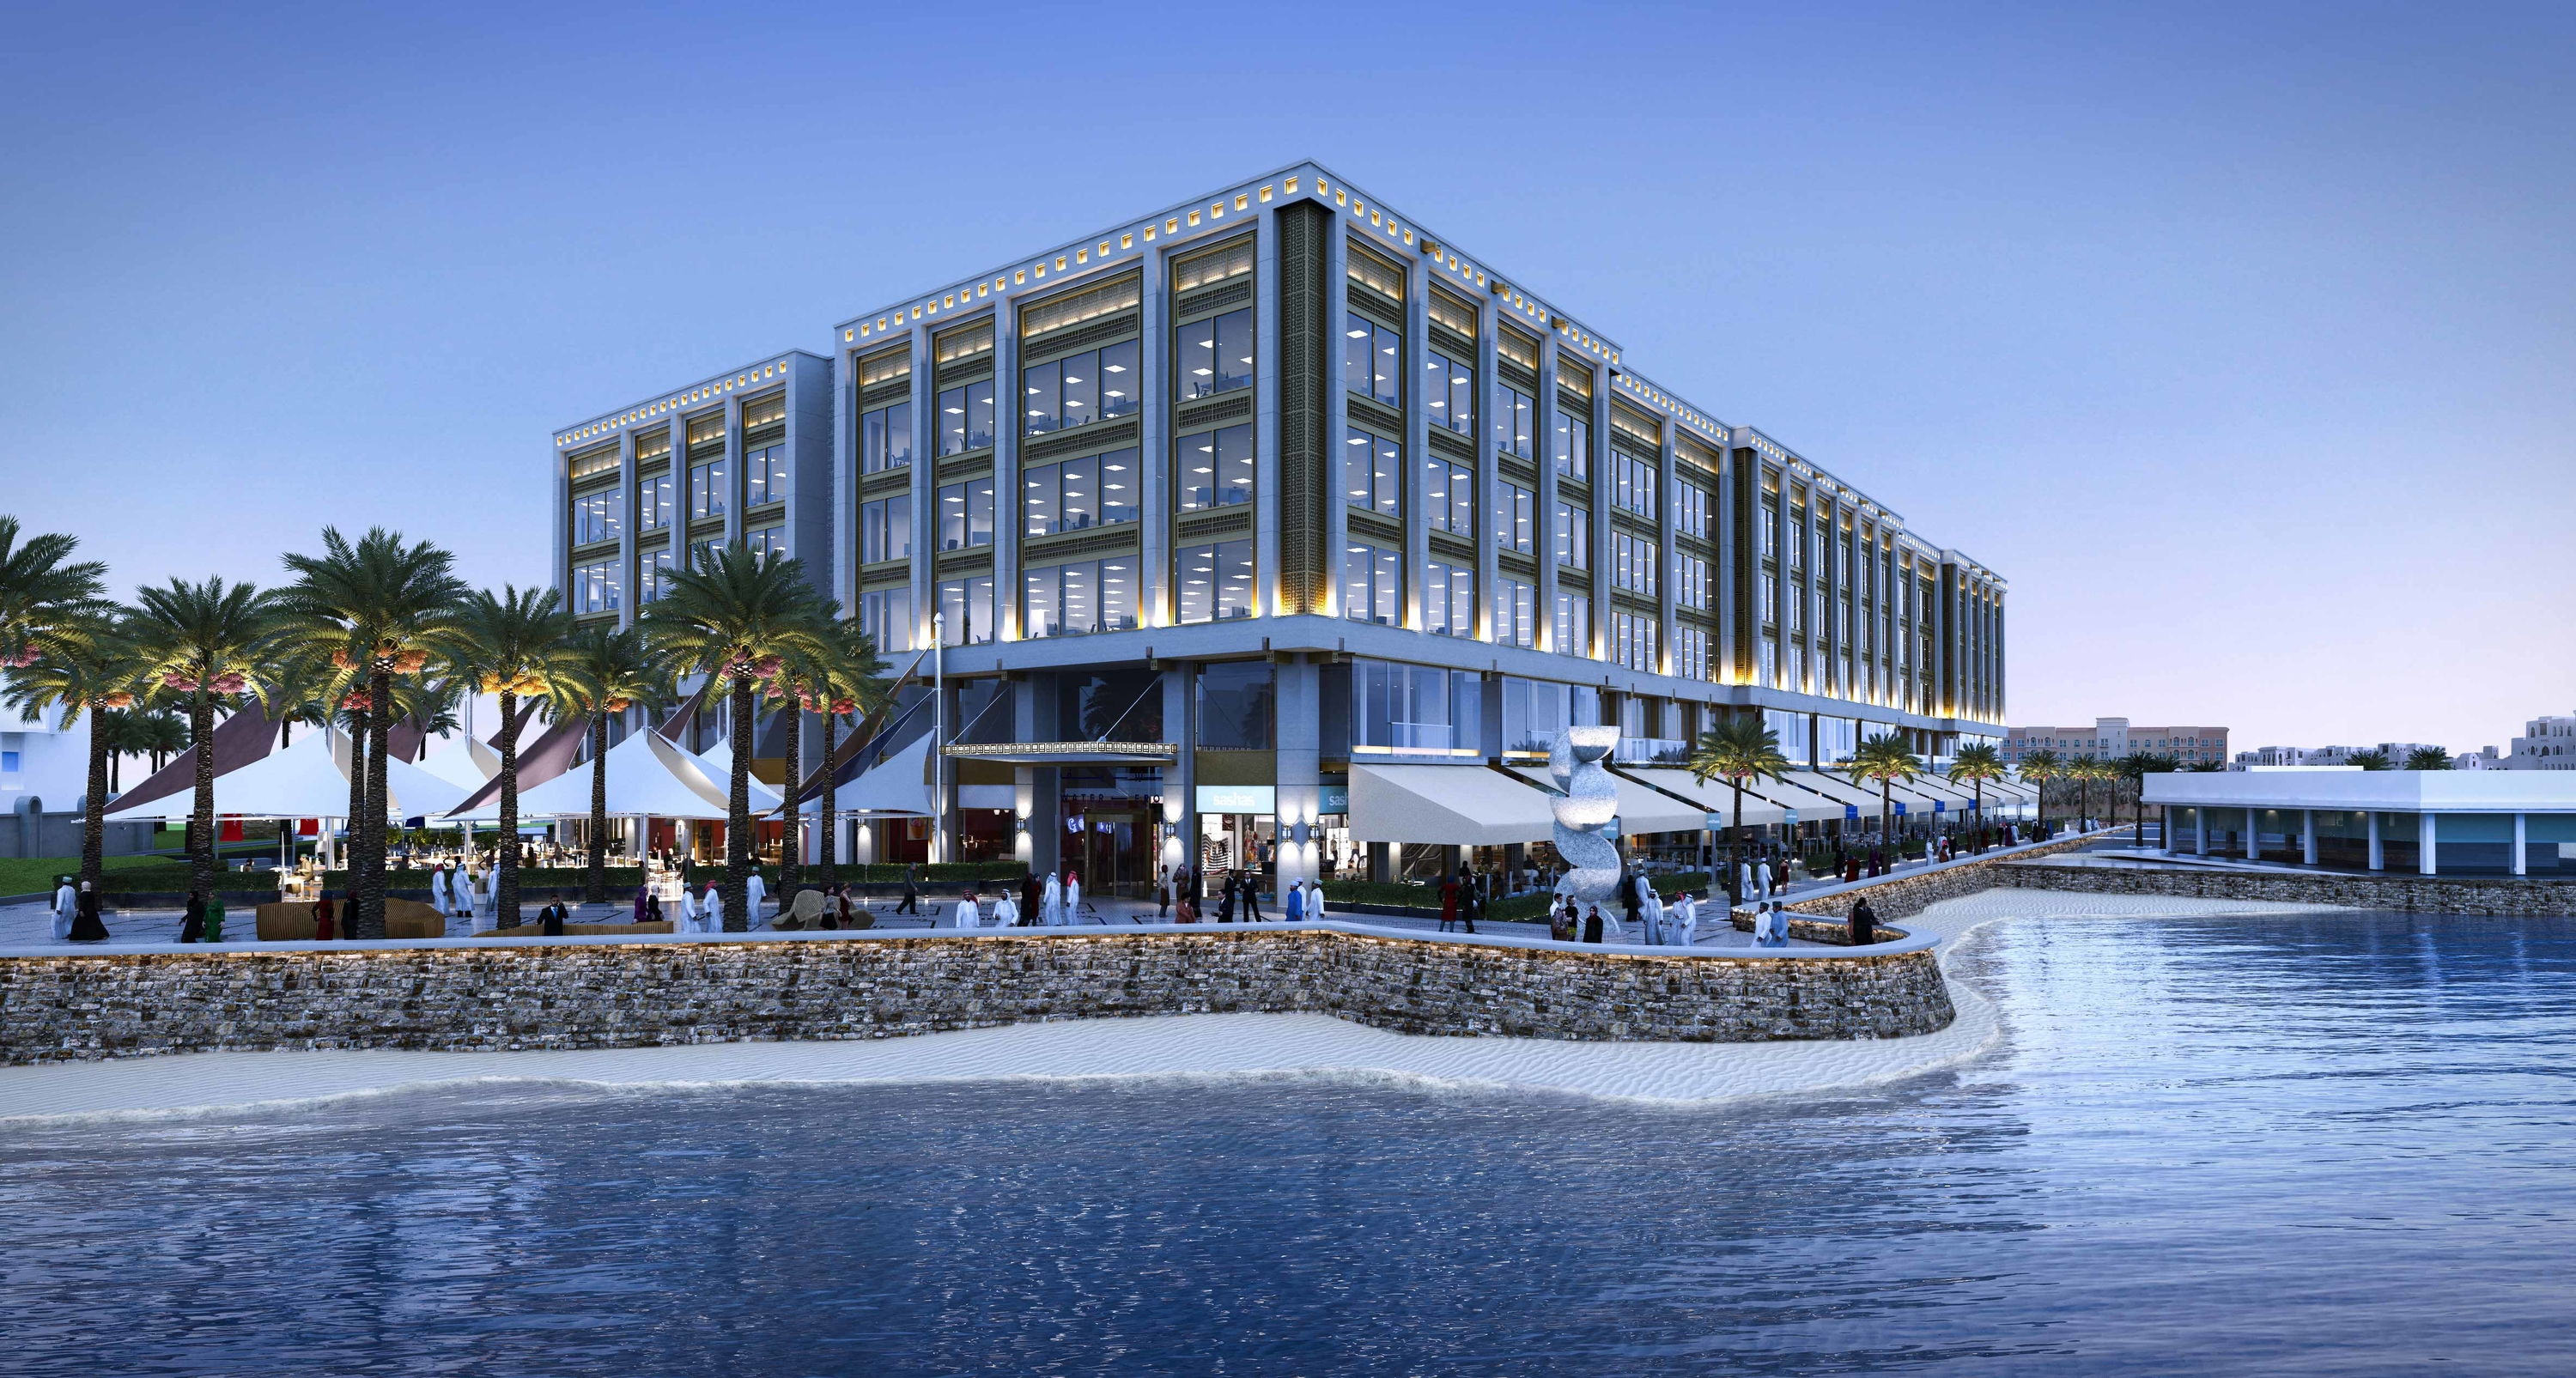 Muscat's Water-Front Project Awarded Leed Gold